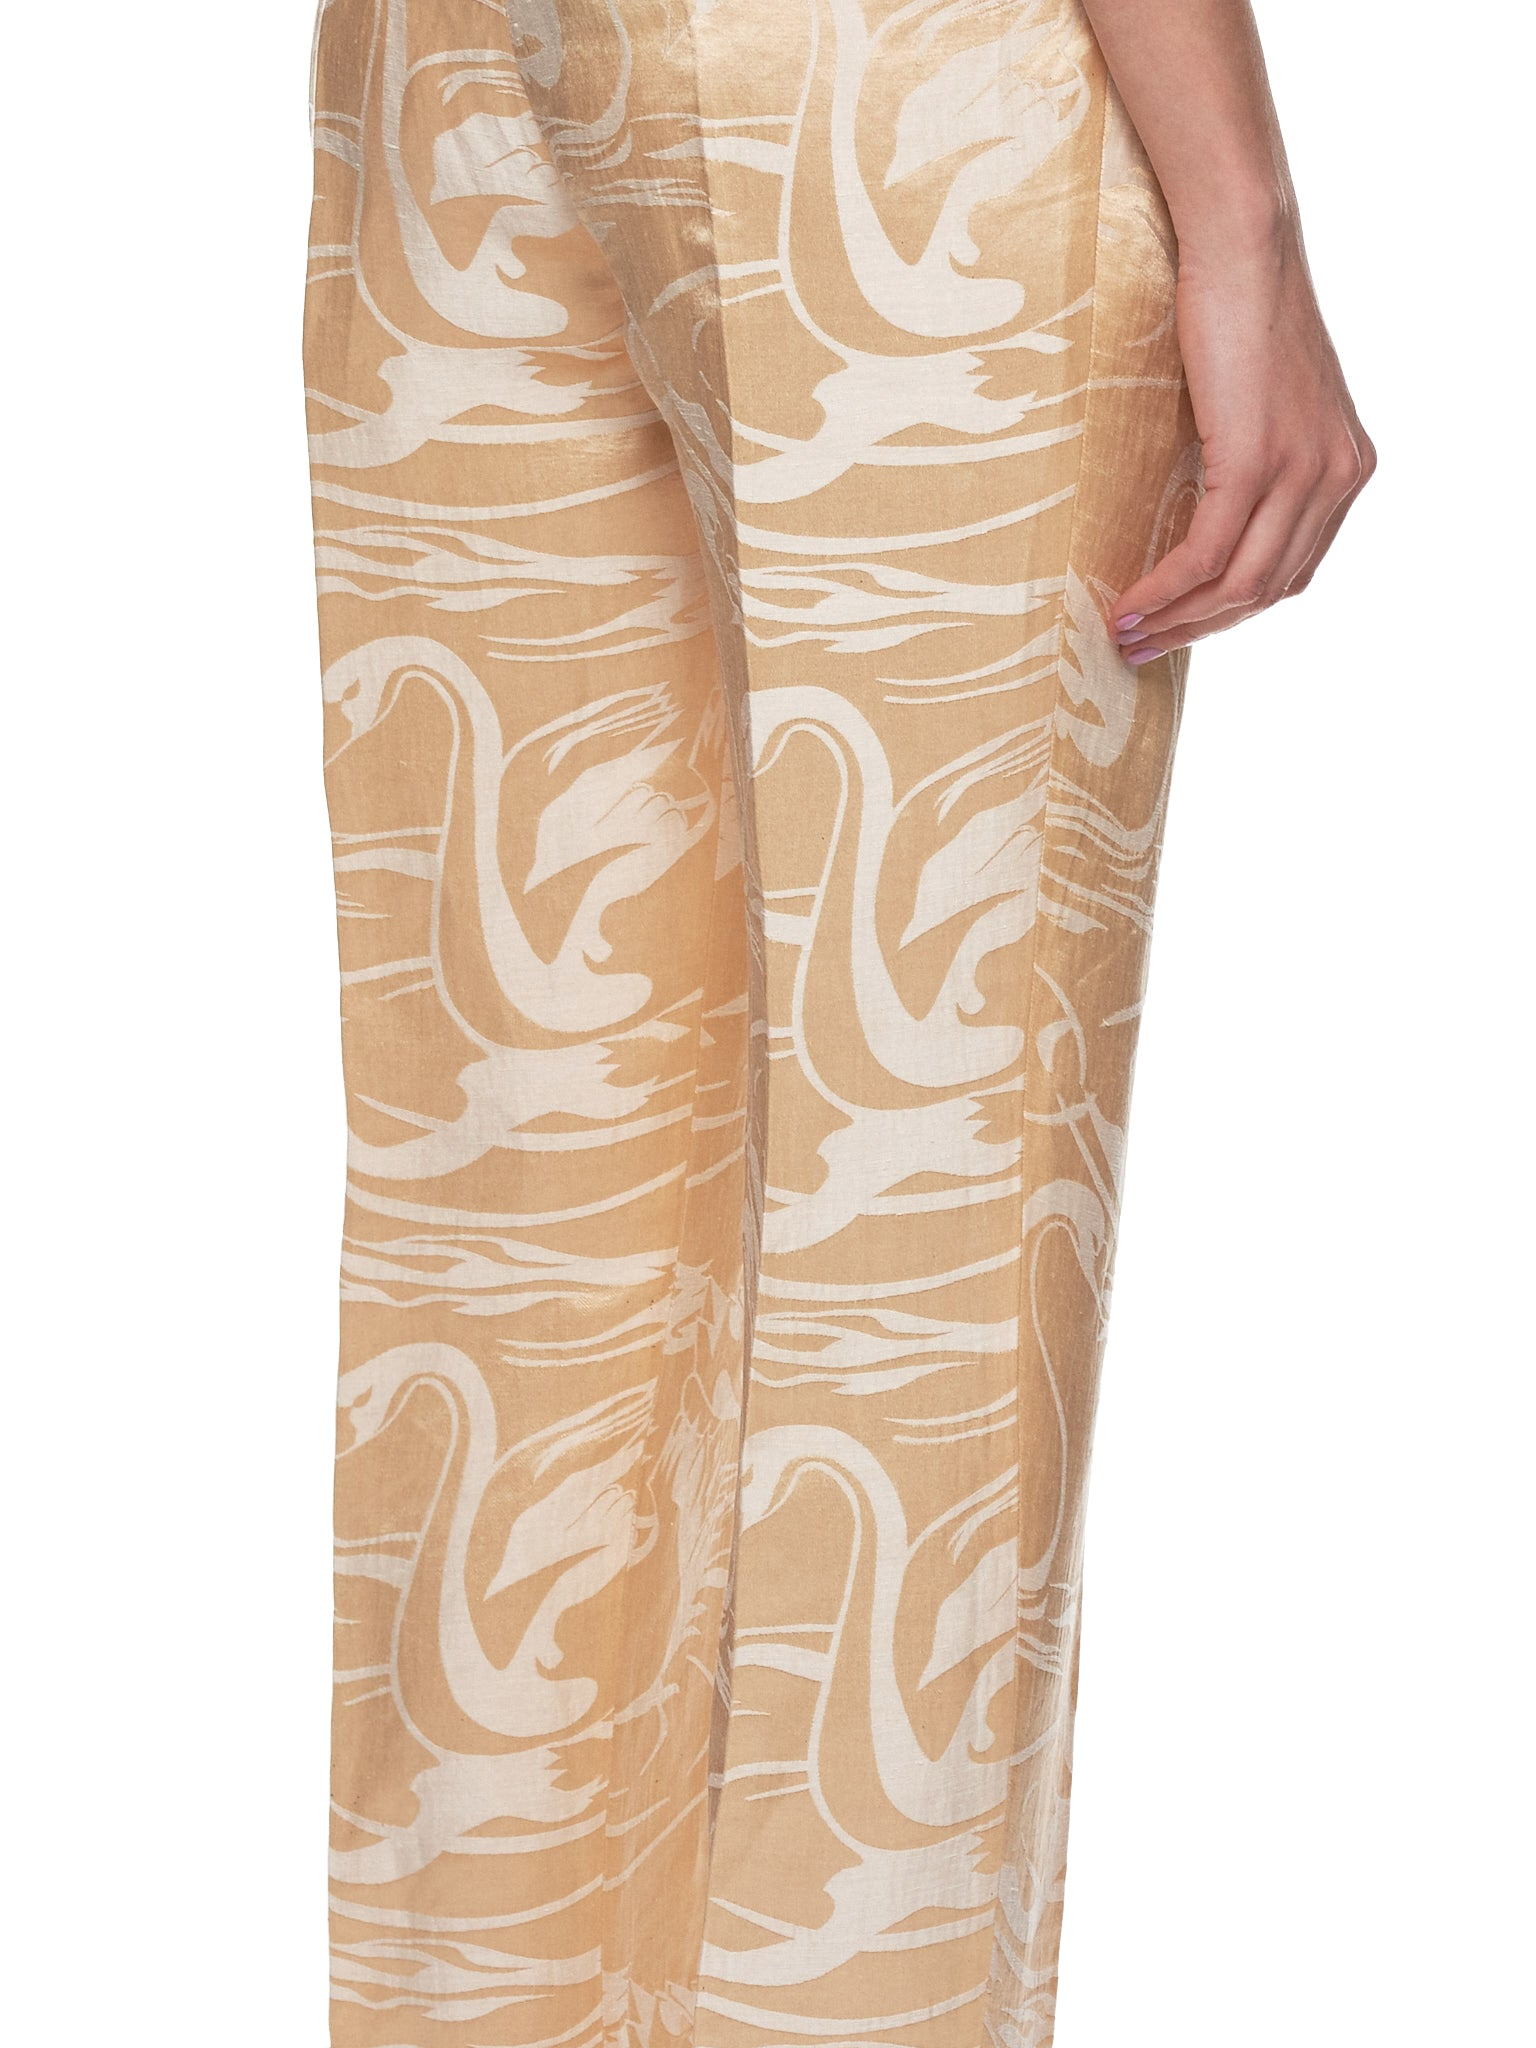 Acne Studios Trousers - Hlorenzo Detail 1